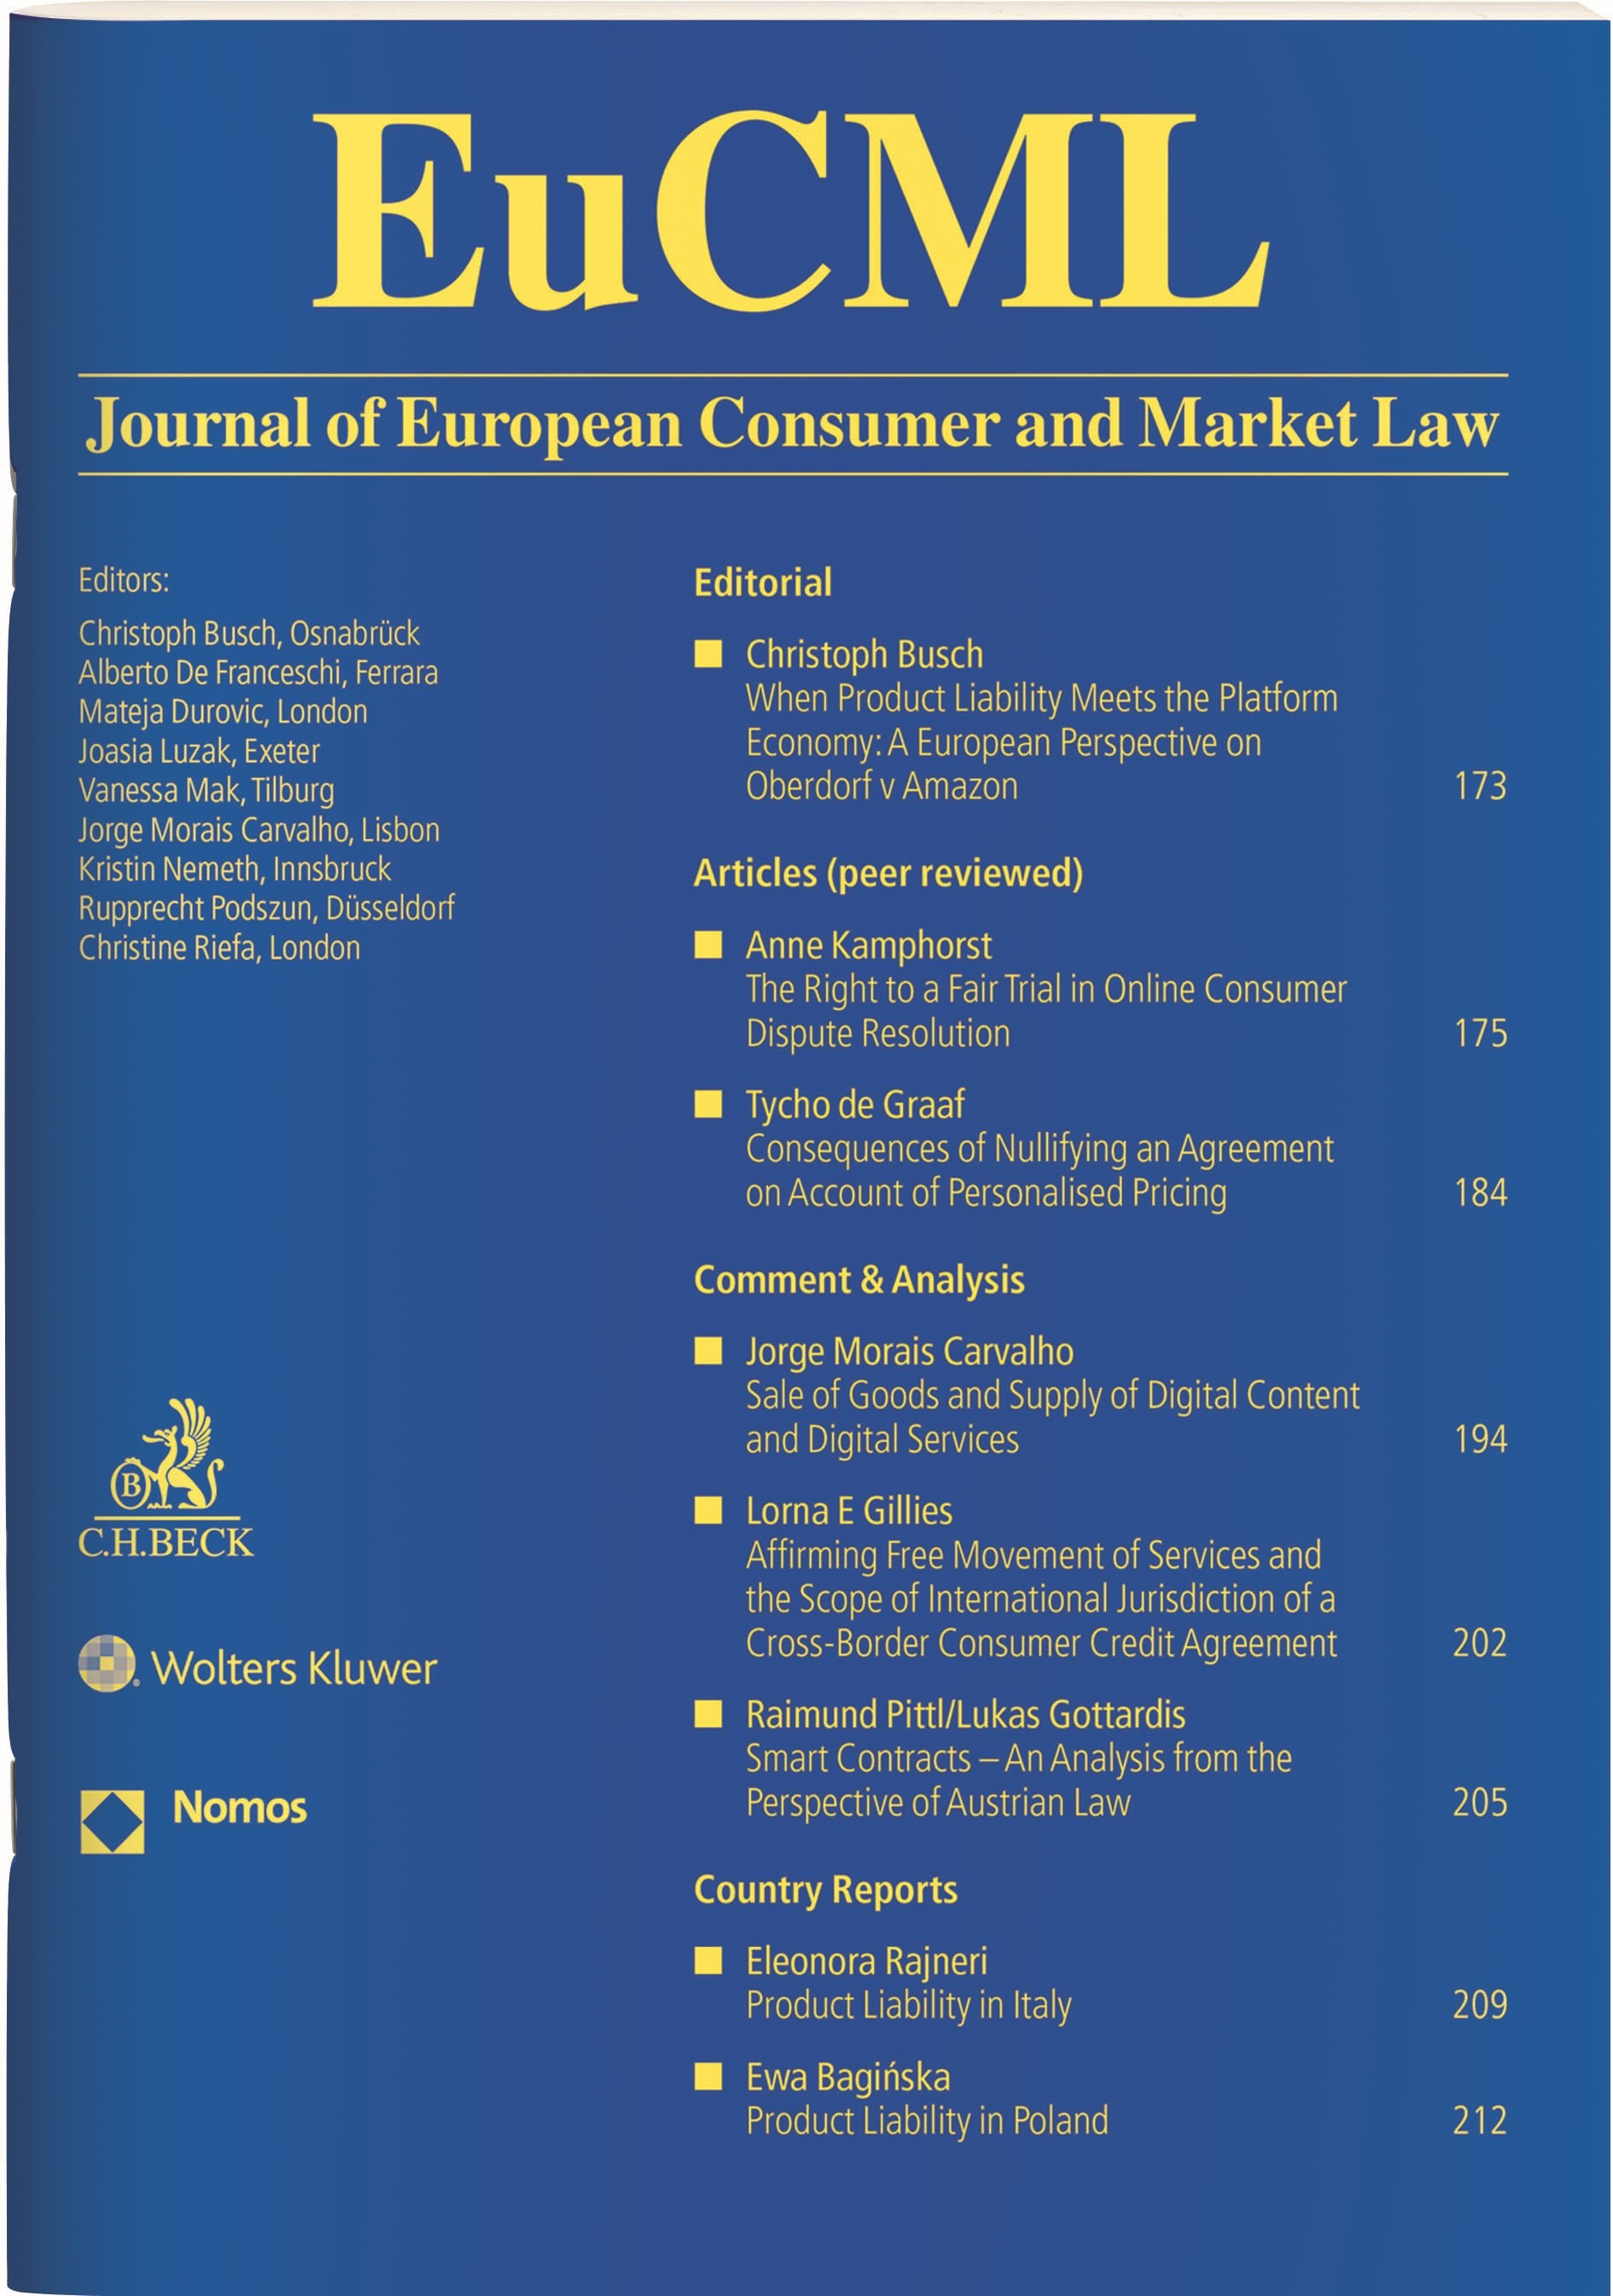 EuCML • Journal of European Consumer and Market Law | 6. Jahrgang, 2015 (Cover)